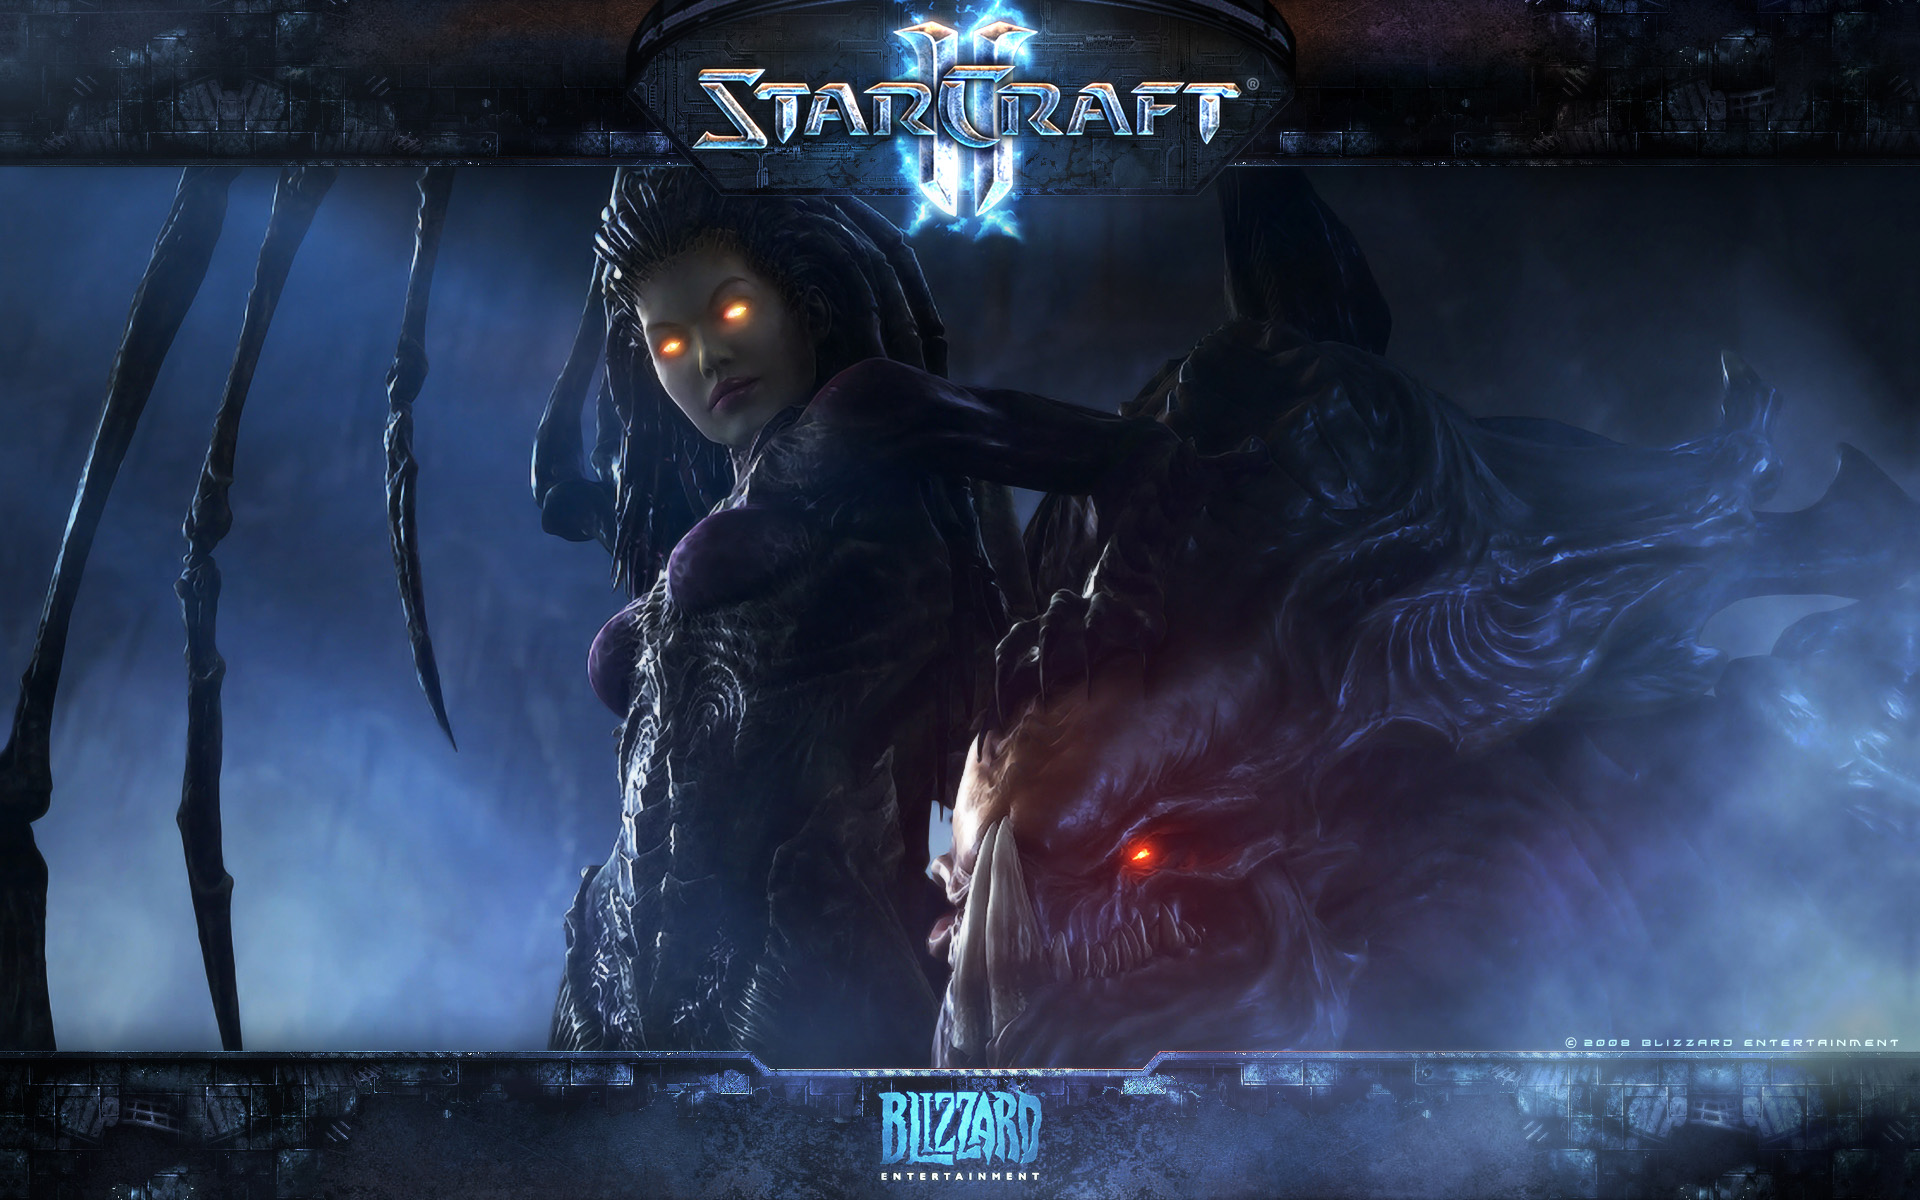 Wallpaper Jeux video StarCraft 2 Kerrigan